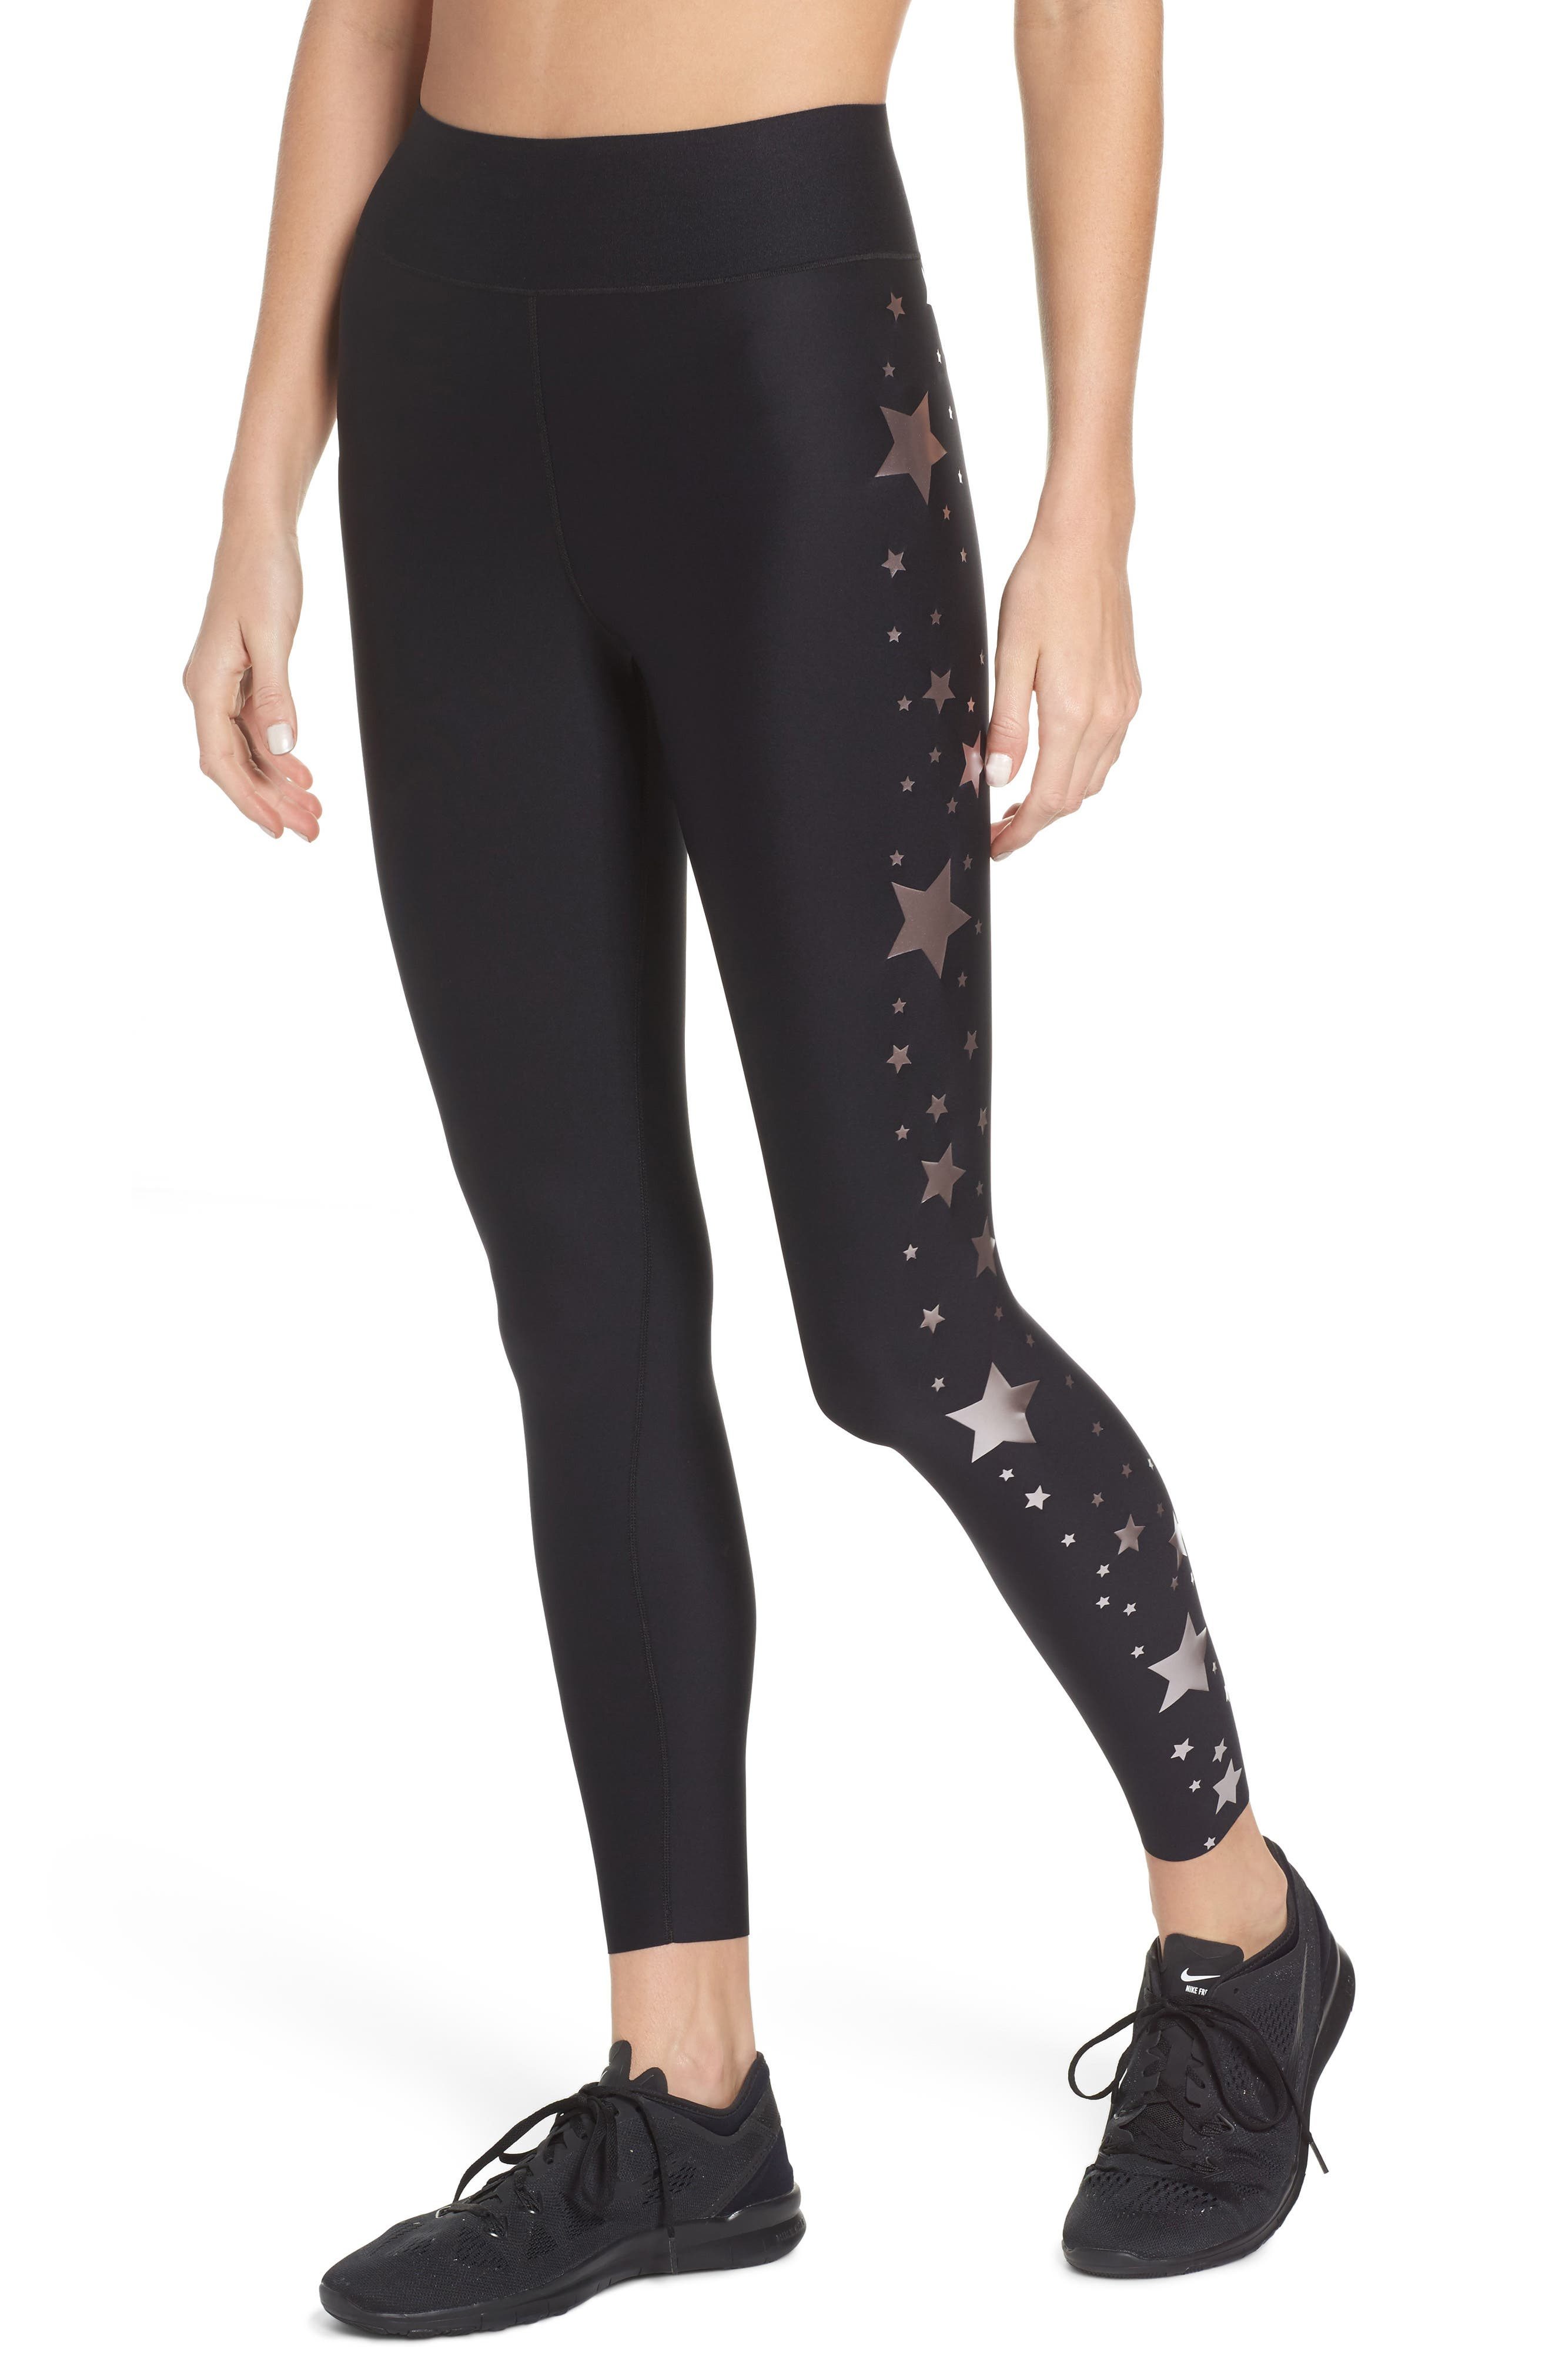 Lux Stellar High Waist Leggings,                         Main,                         color, 001